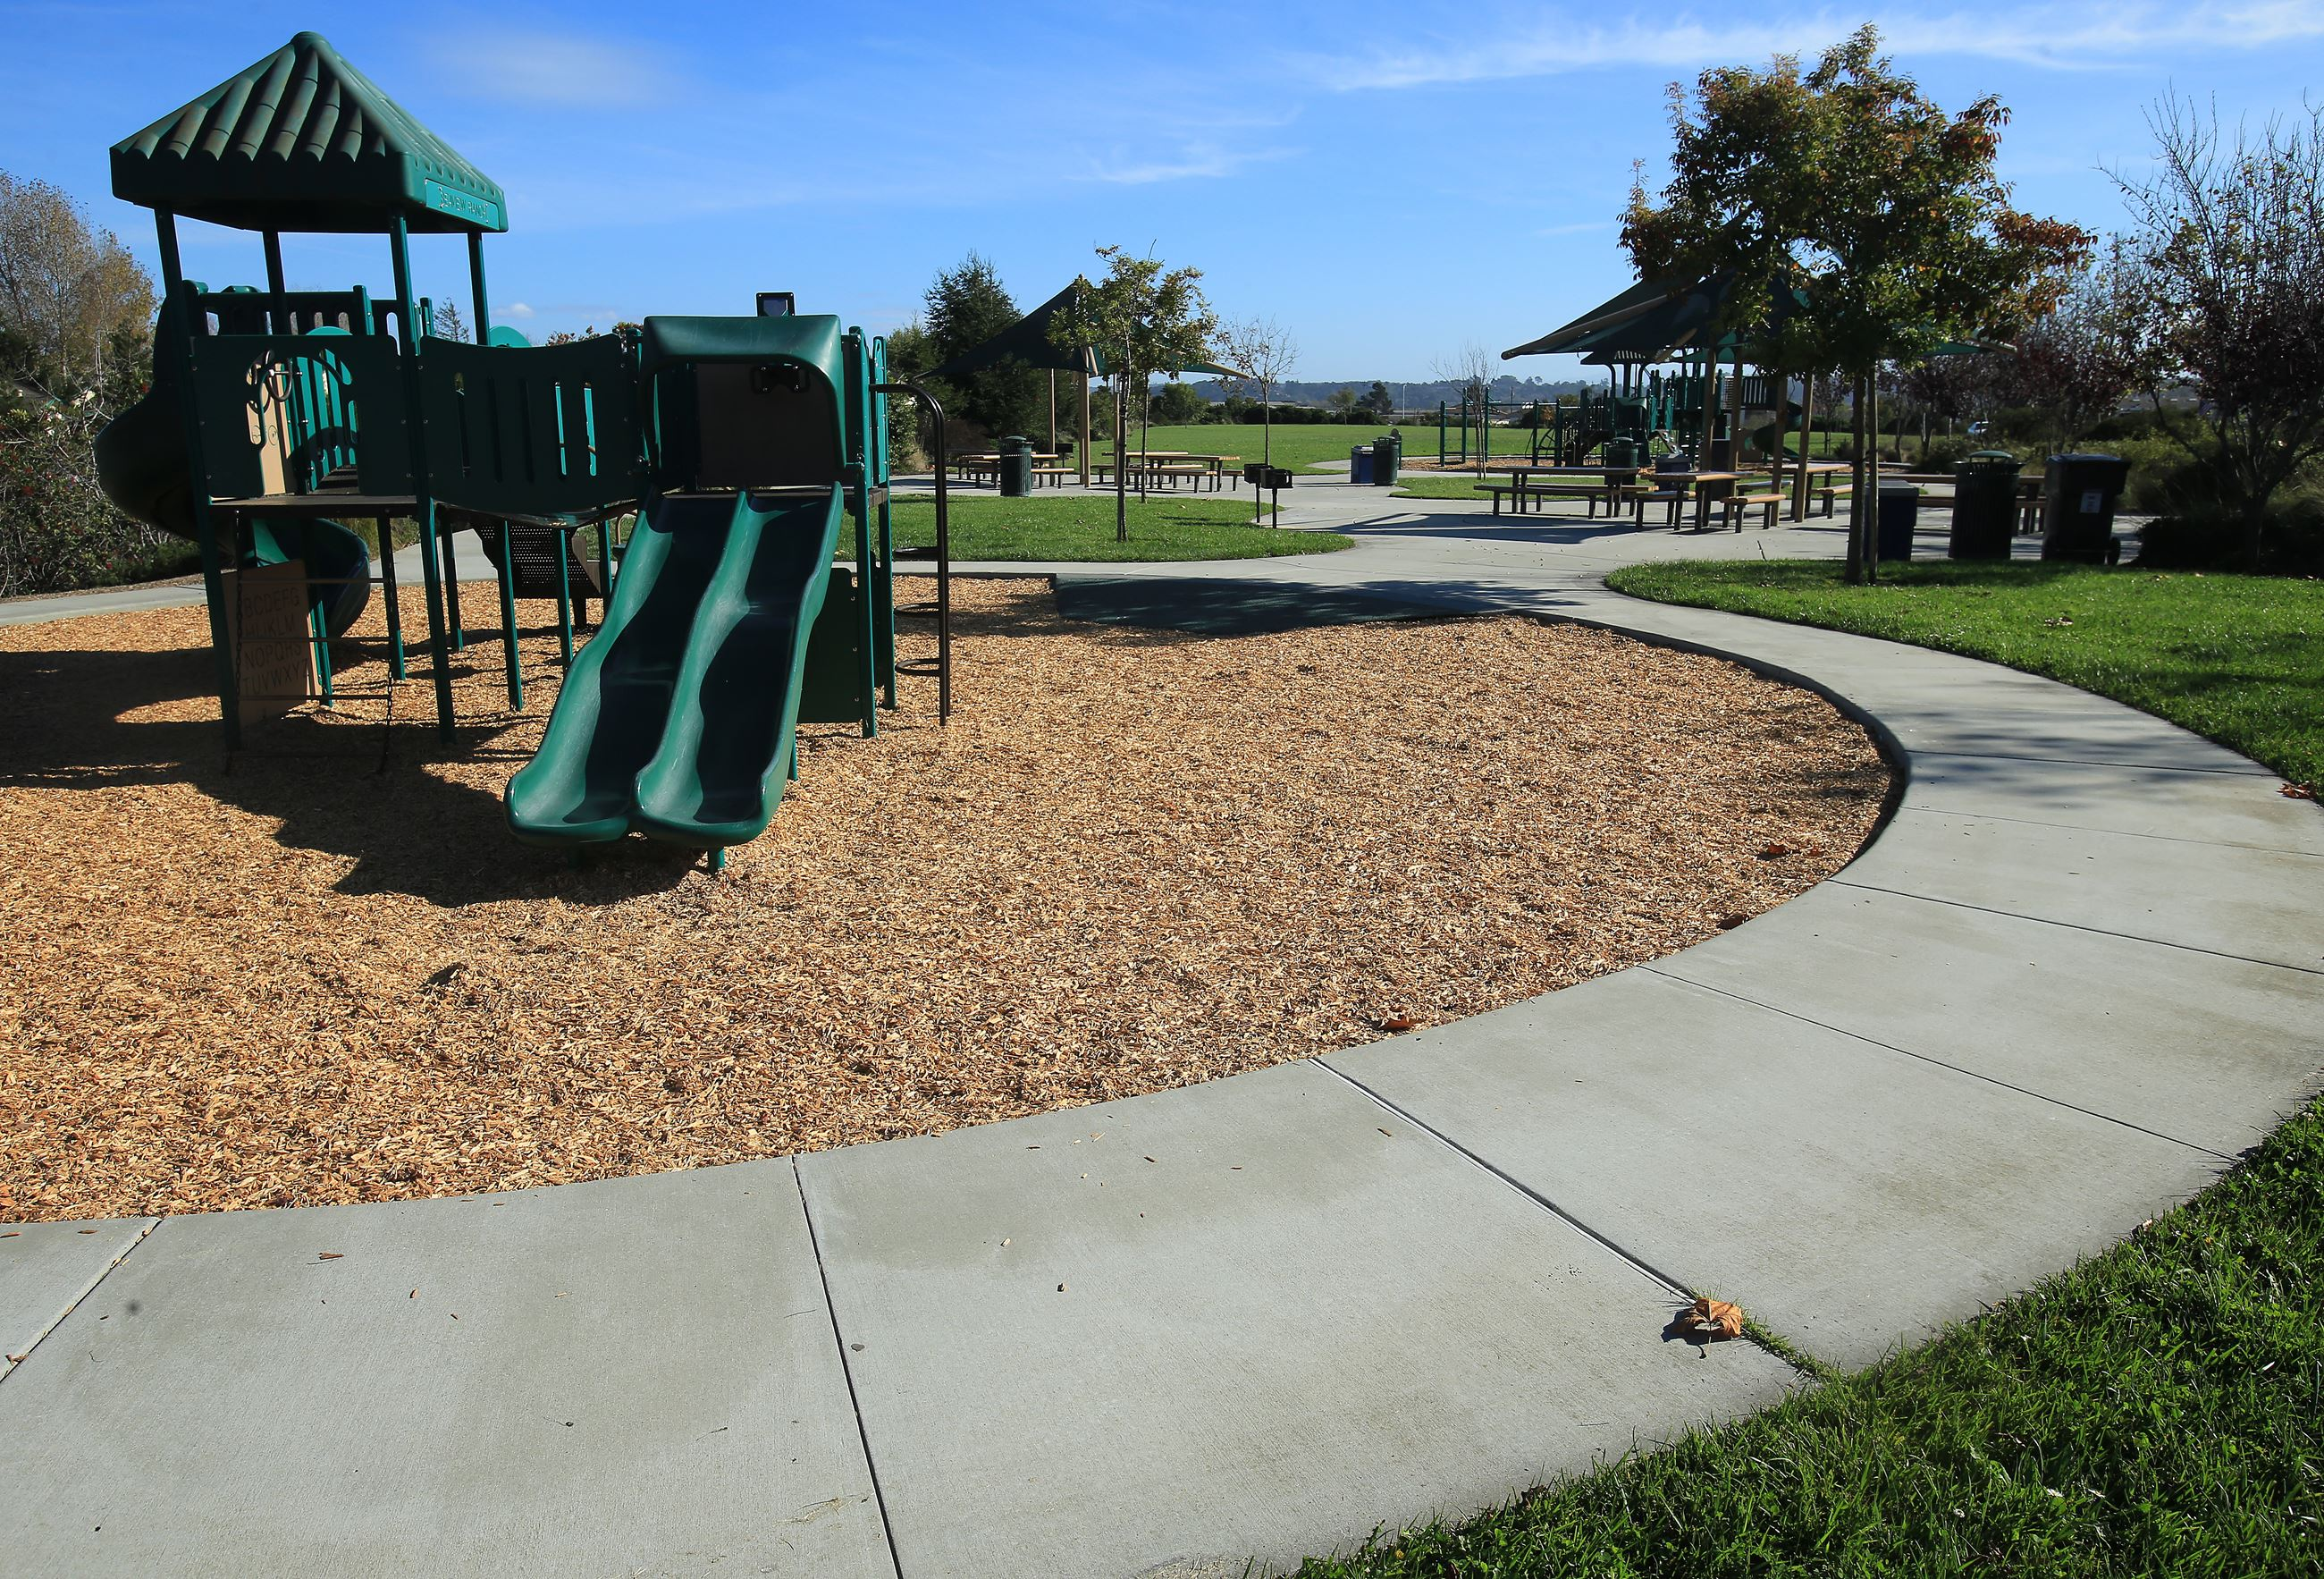 Sea View park playground structure and paths